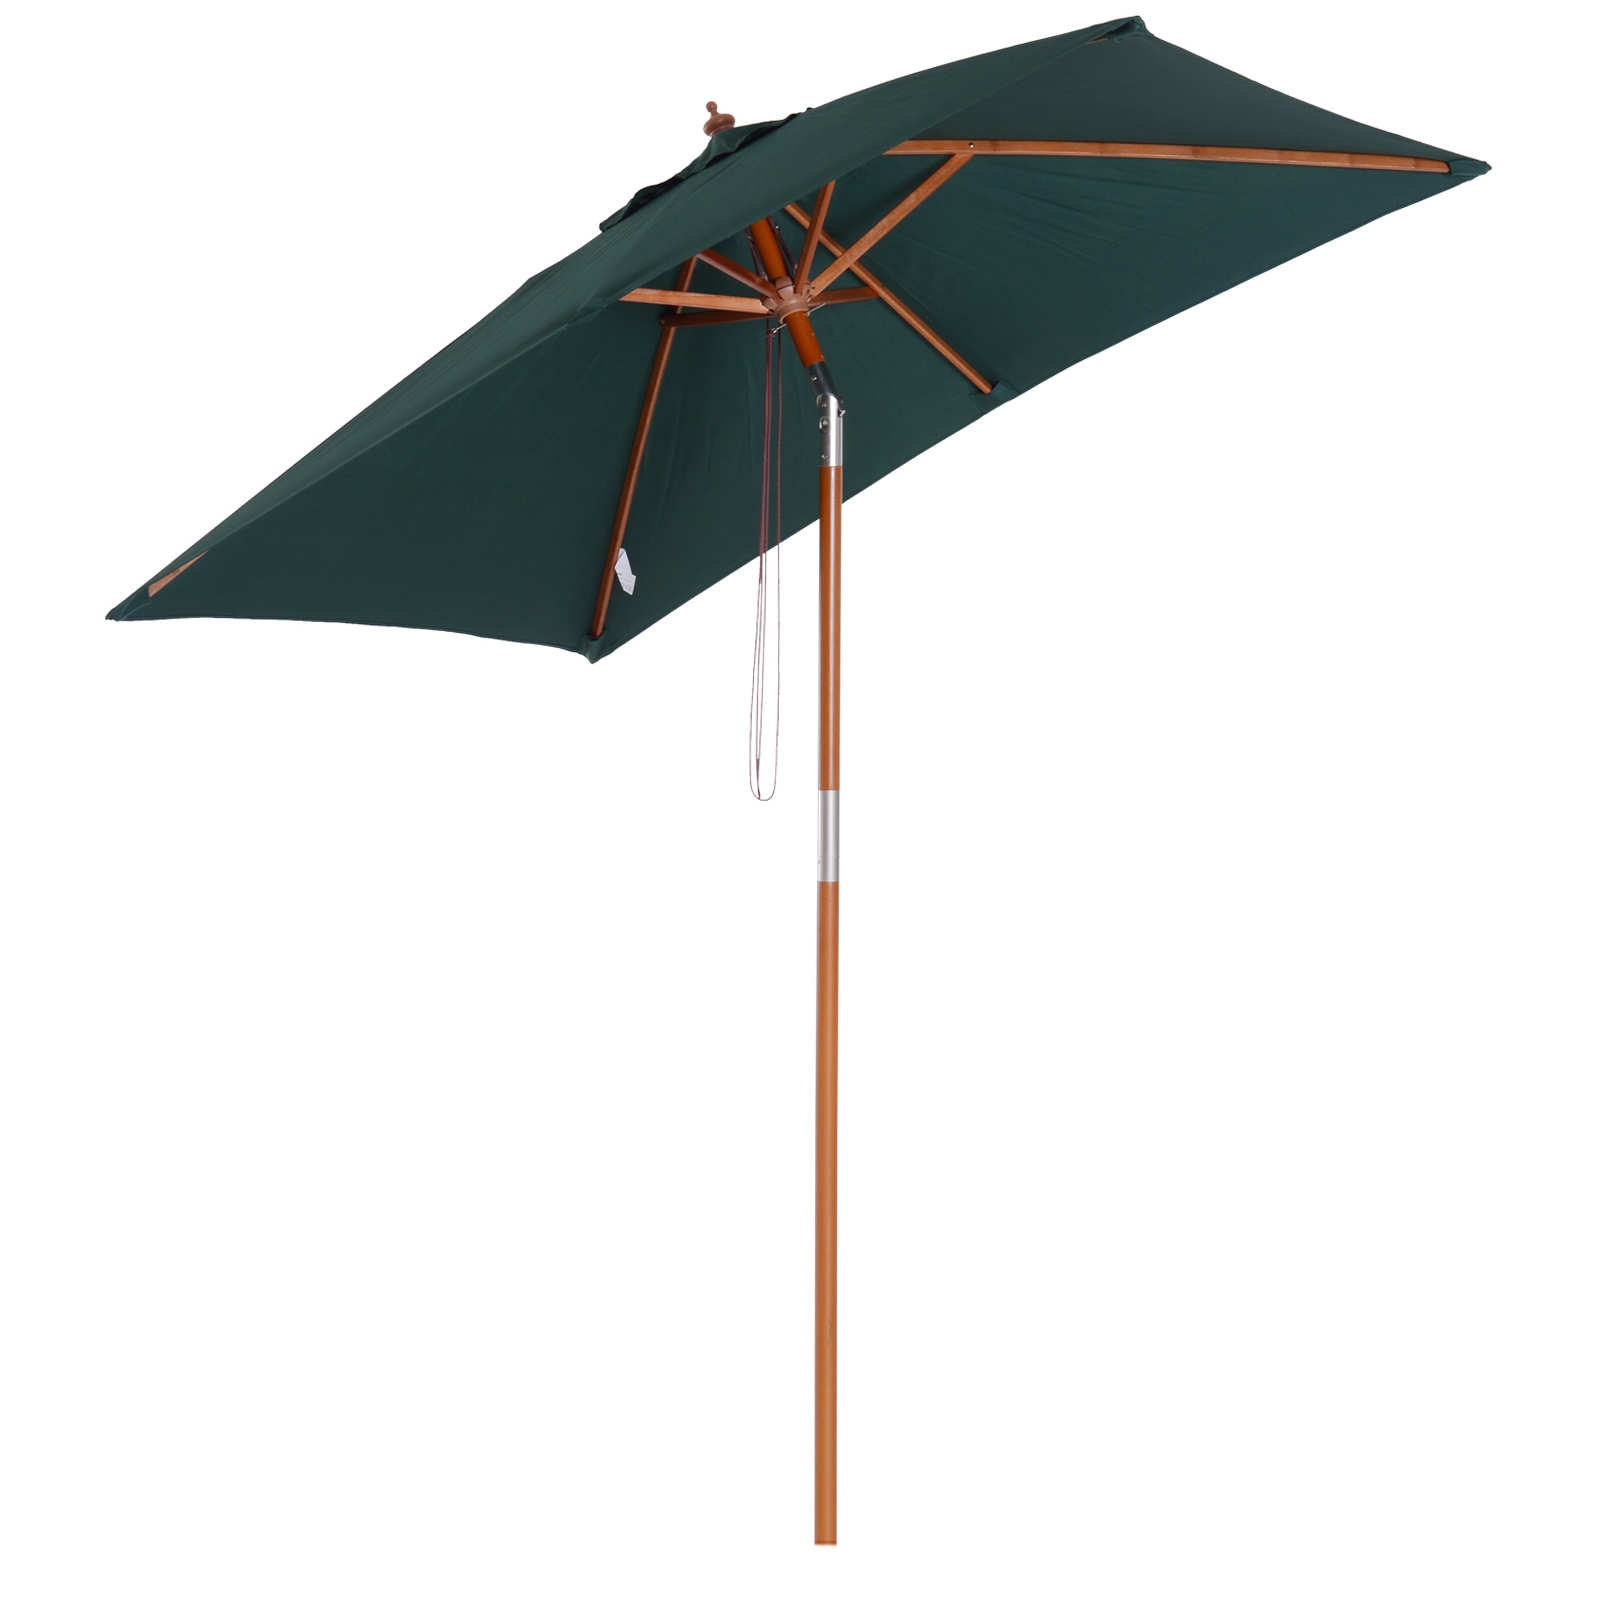 Parasol rectangulaire inclinable vert